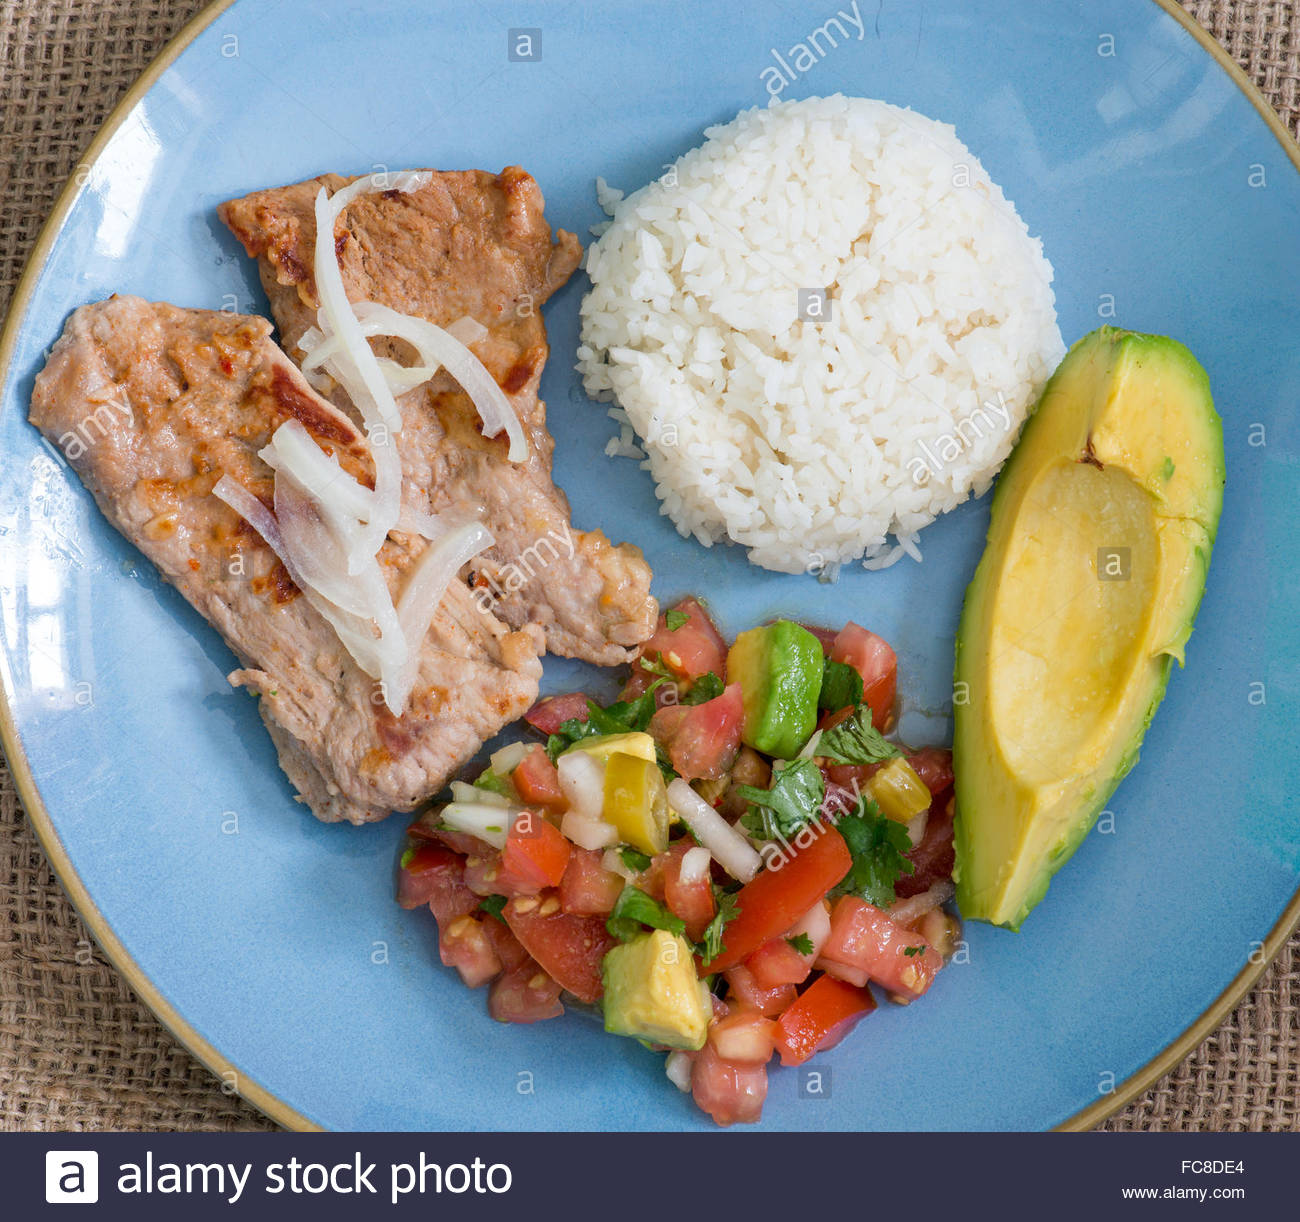 Latin American cuisine fusion: pork steak, white rice,pico de gallo and avocado.Mexican and Cuban cuisine fusion Stock Photo